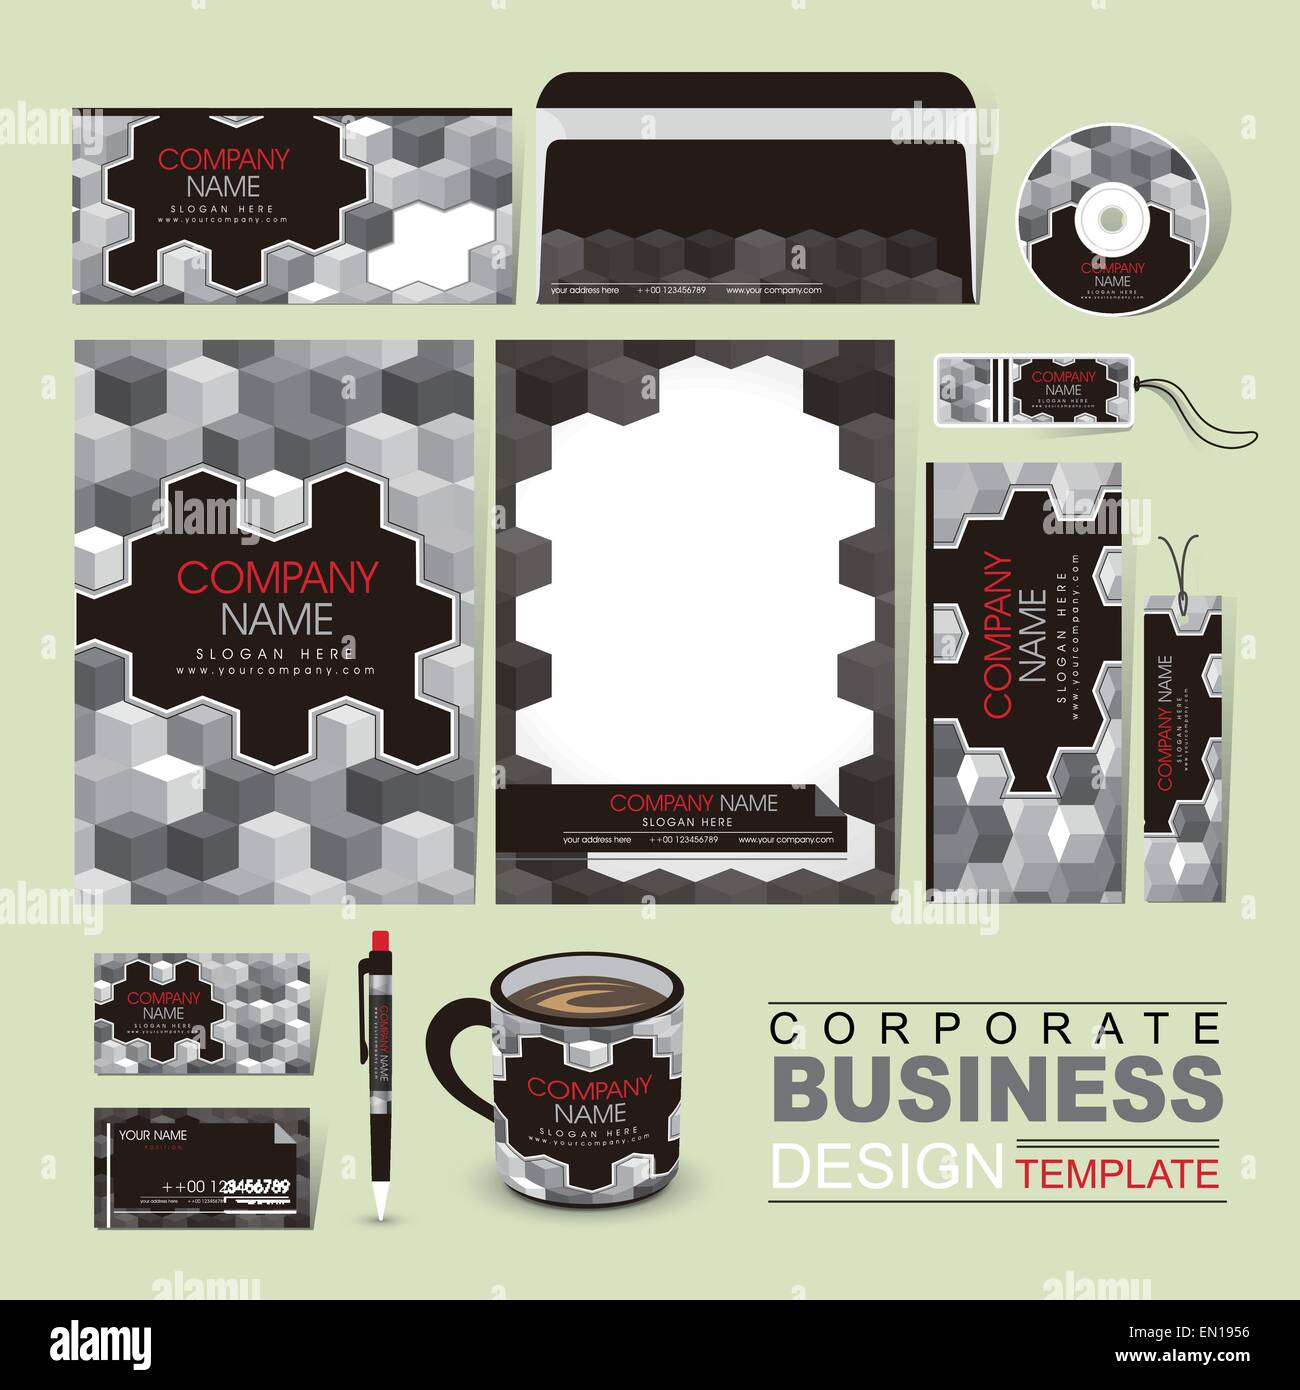 vector business corporate identity template with grayscale blocks ...